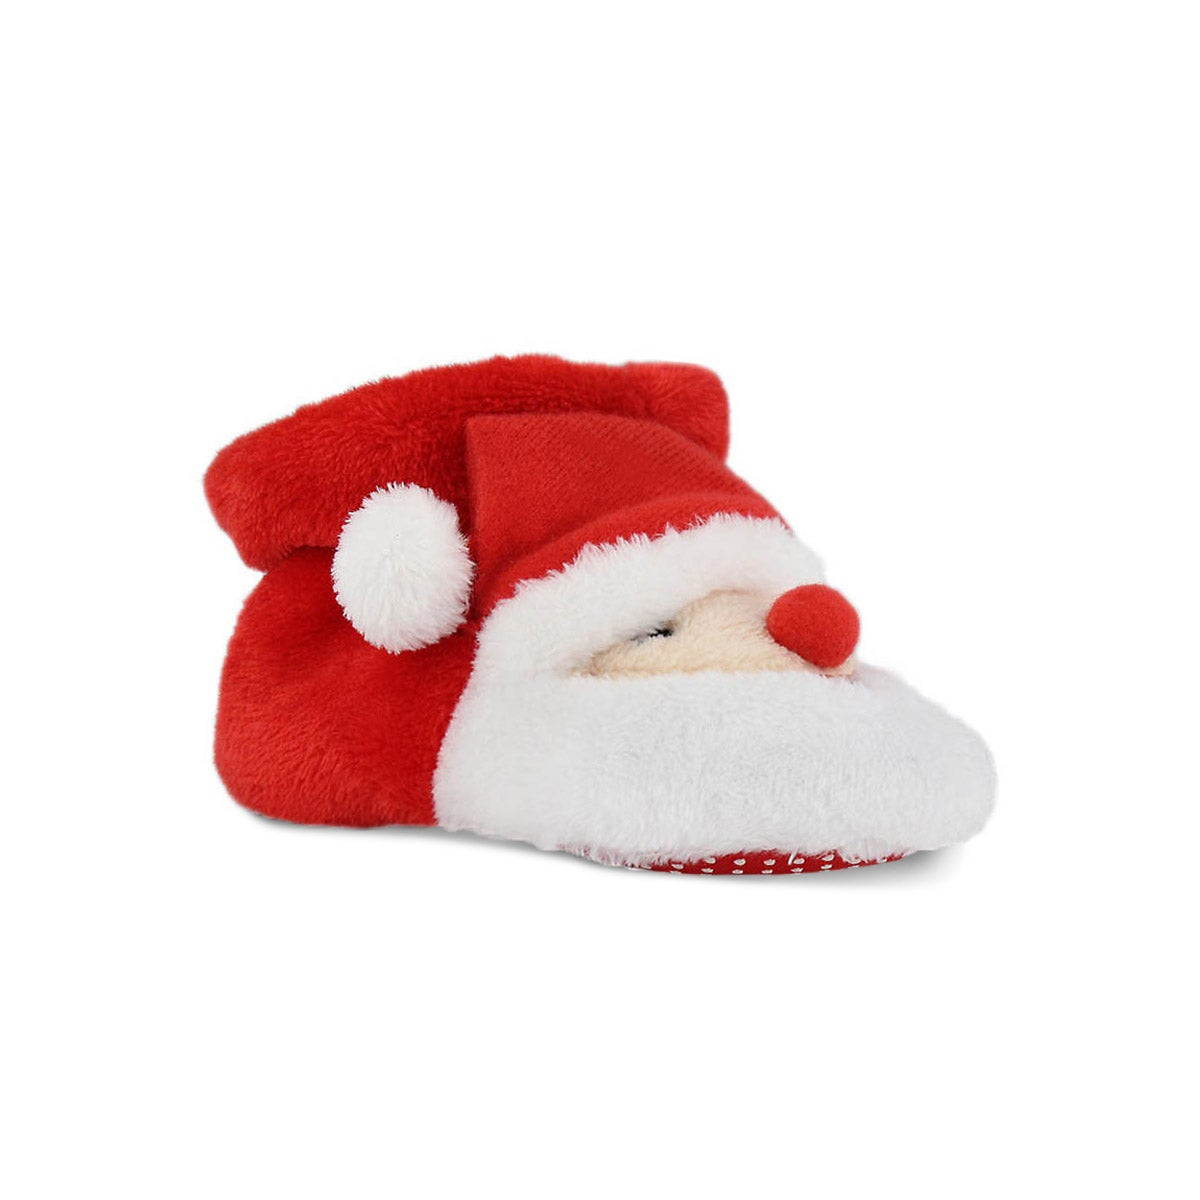 Infs Santy red slipper booties